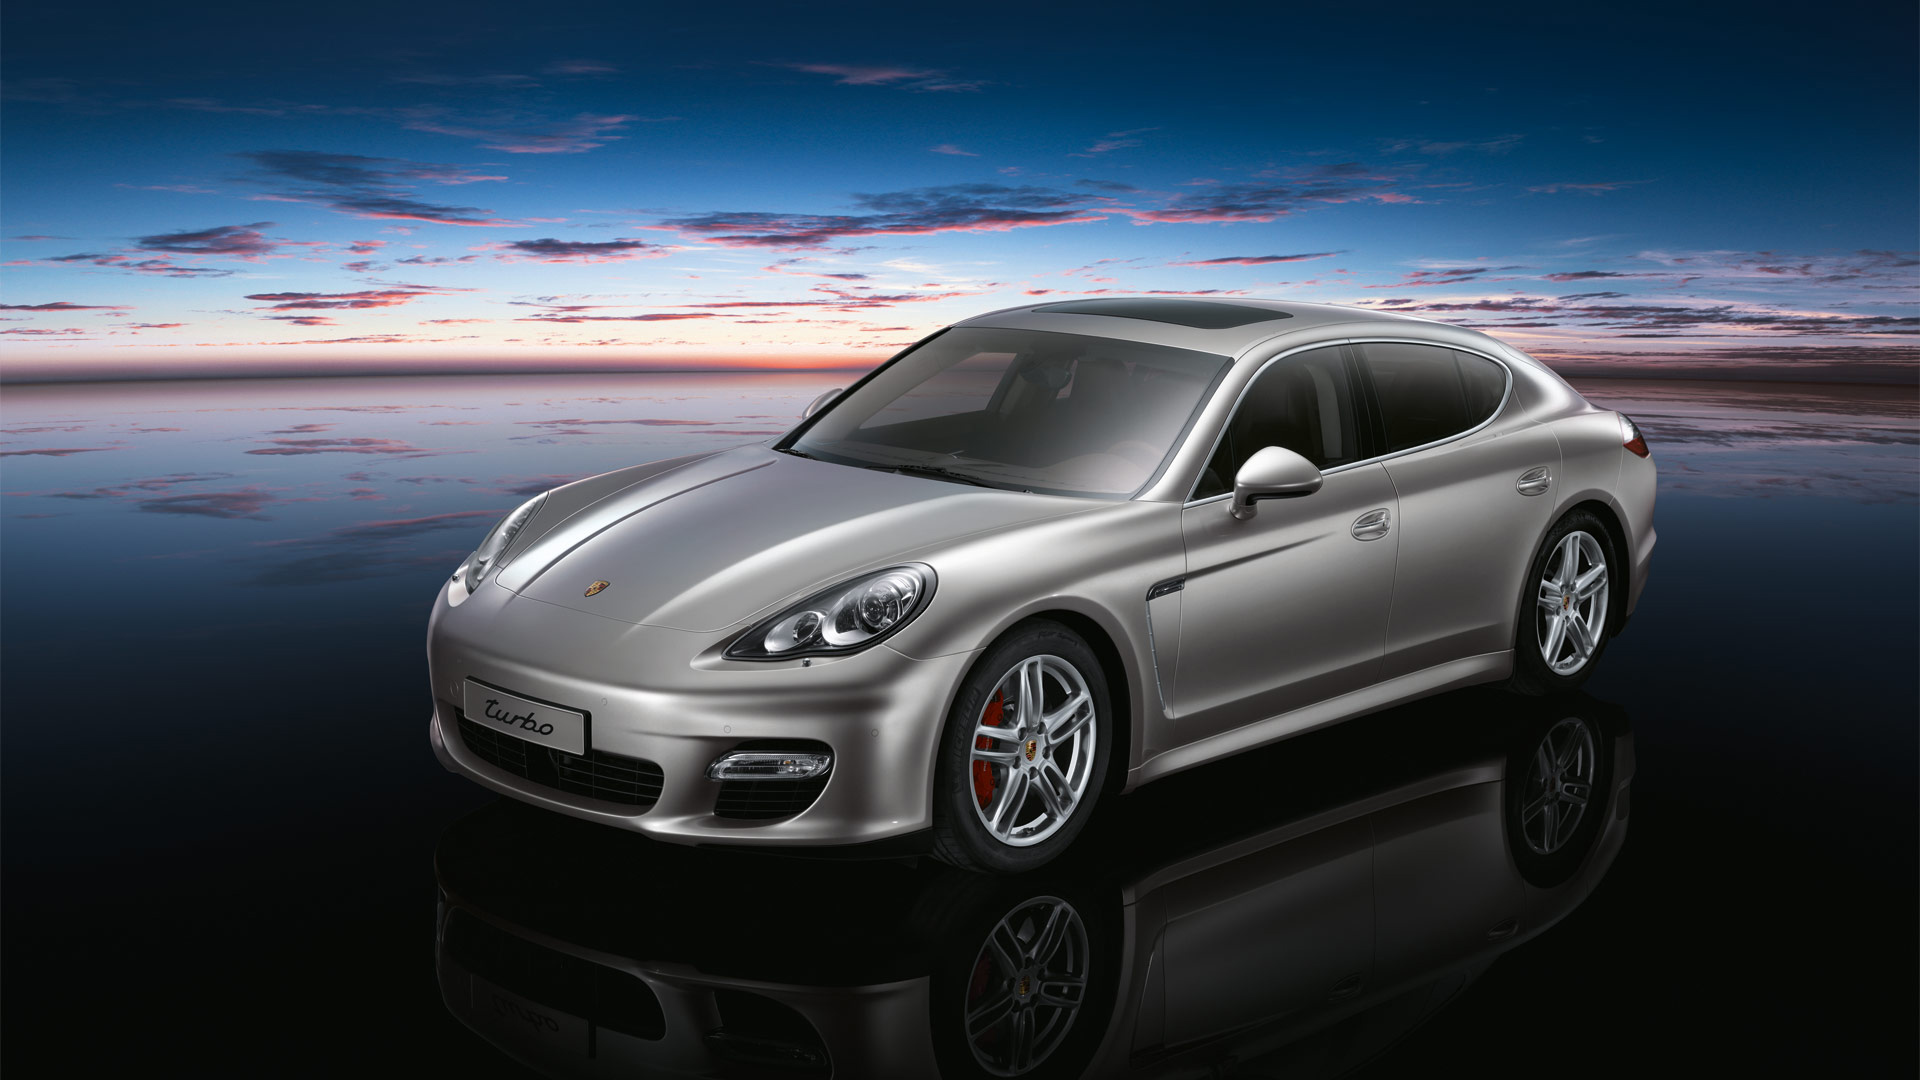 Porsche Panamera Turbo 1006.41 Kb